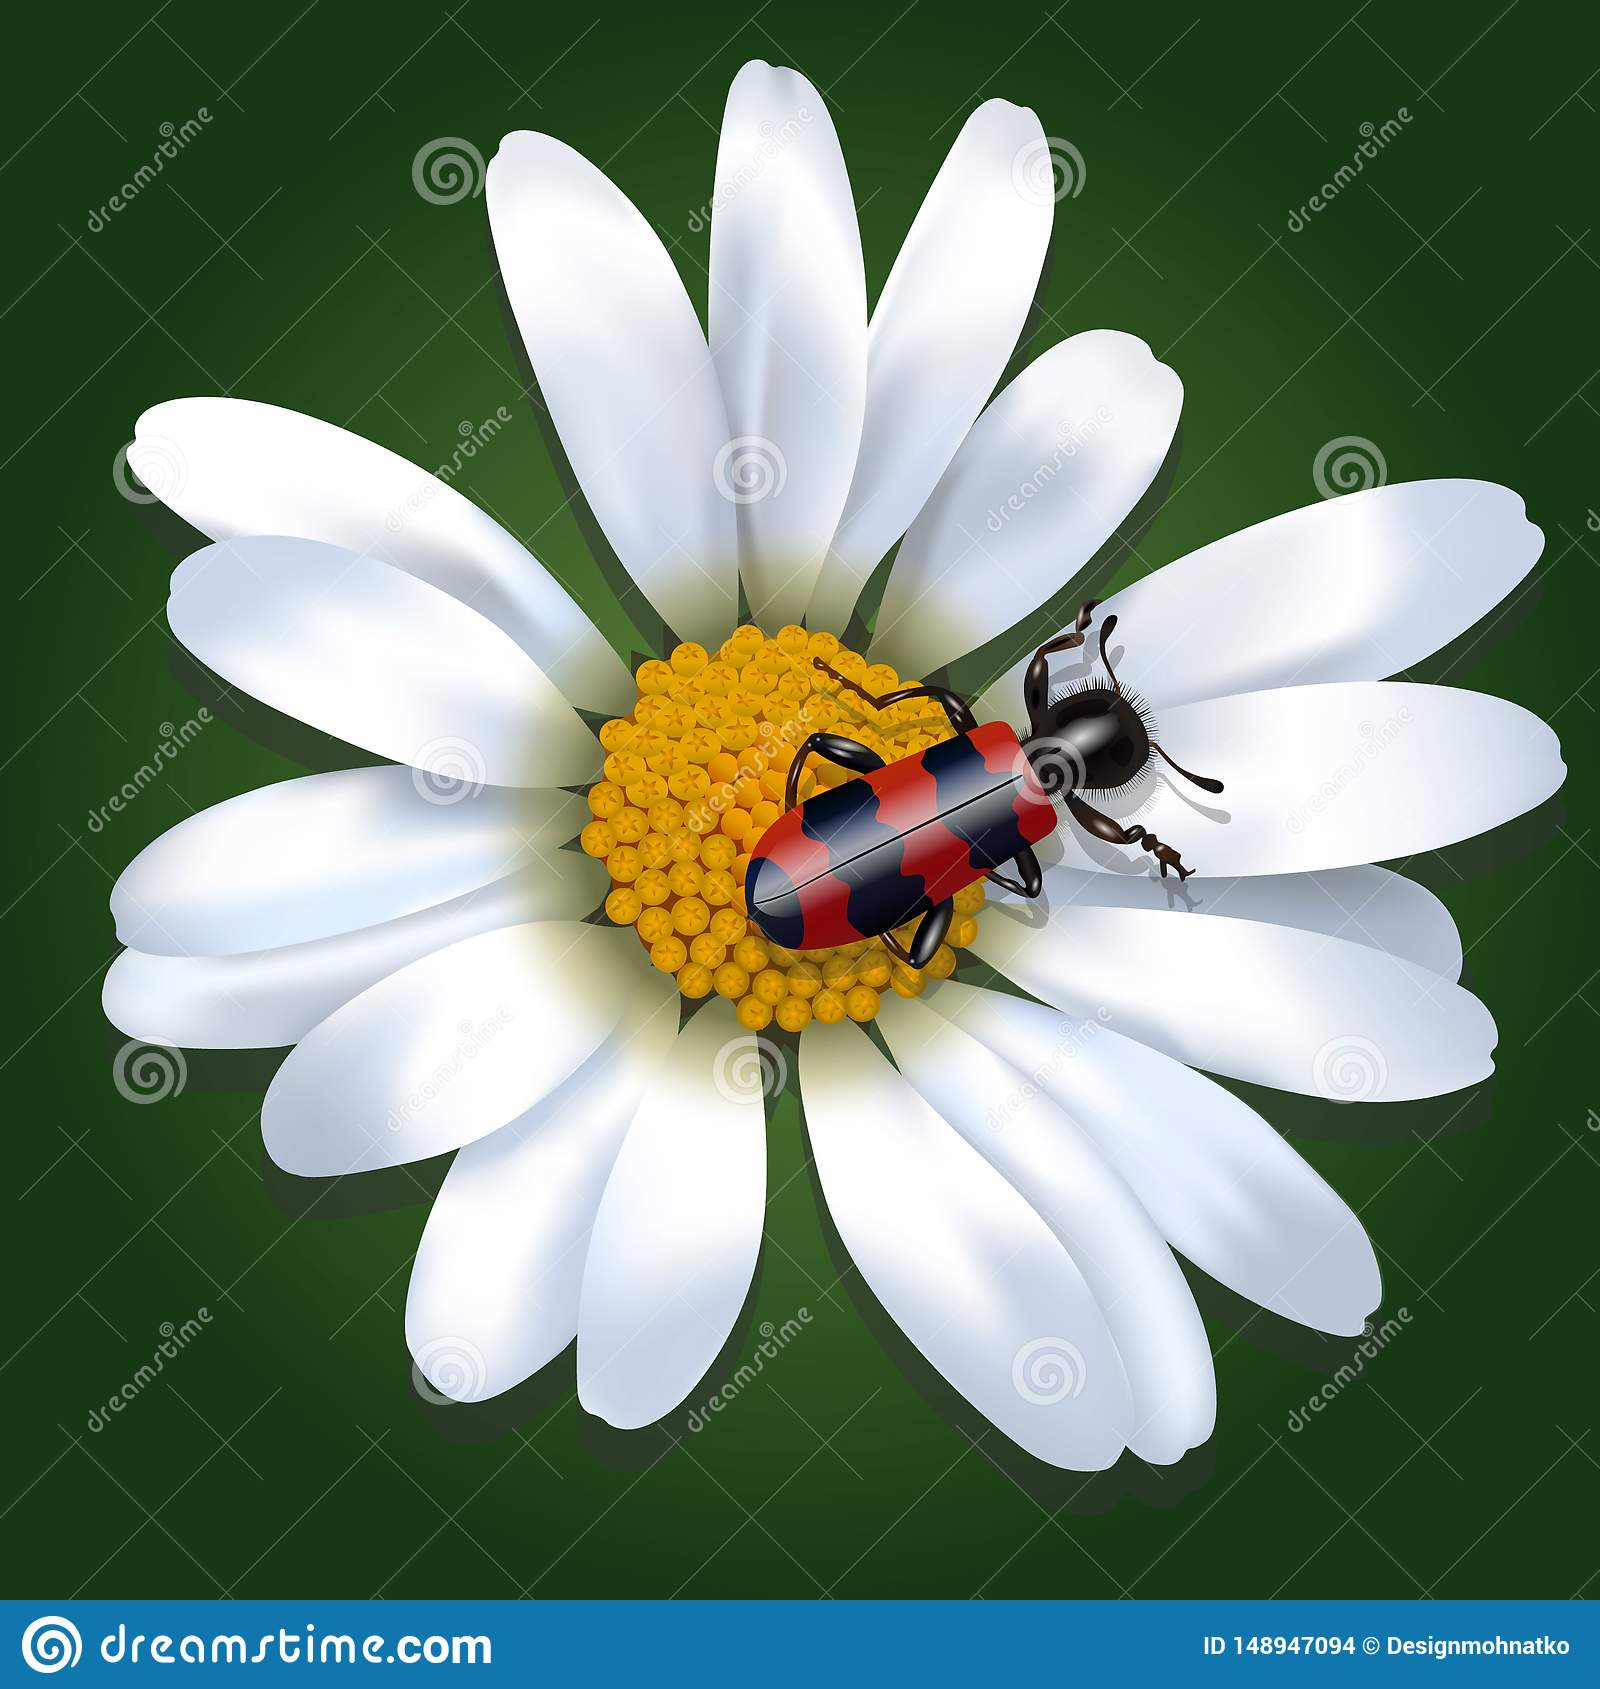 Red and black beetle on a daisy flower